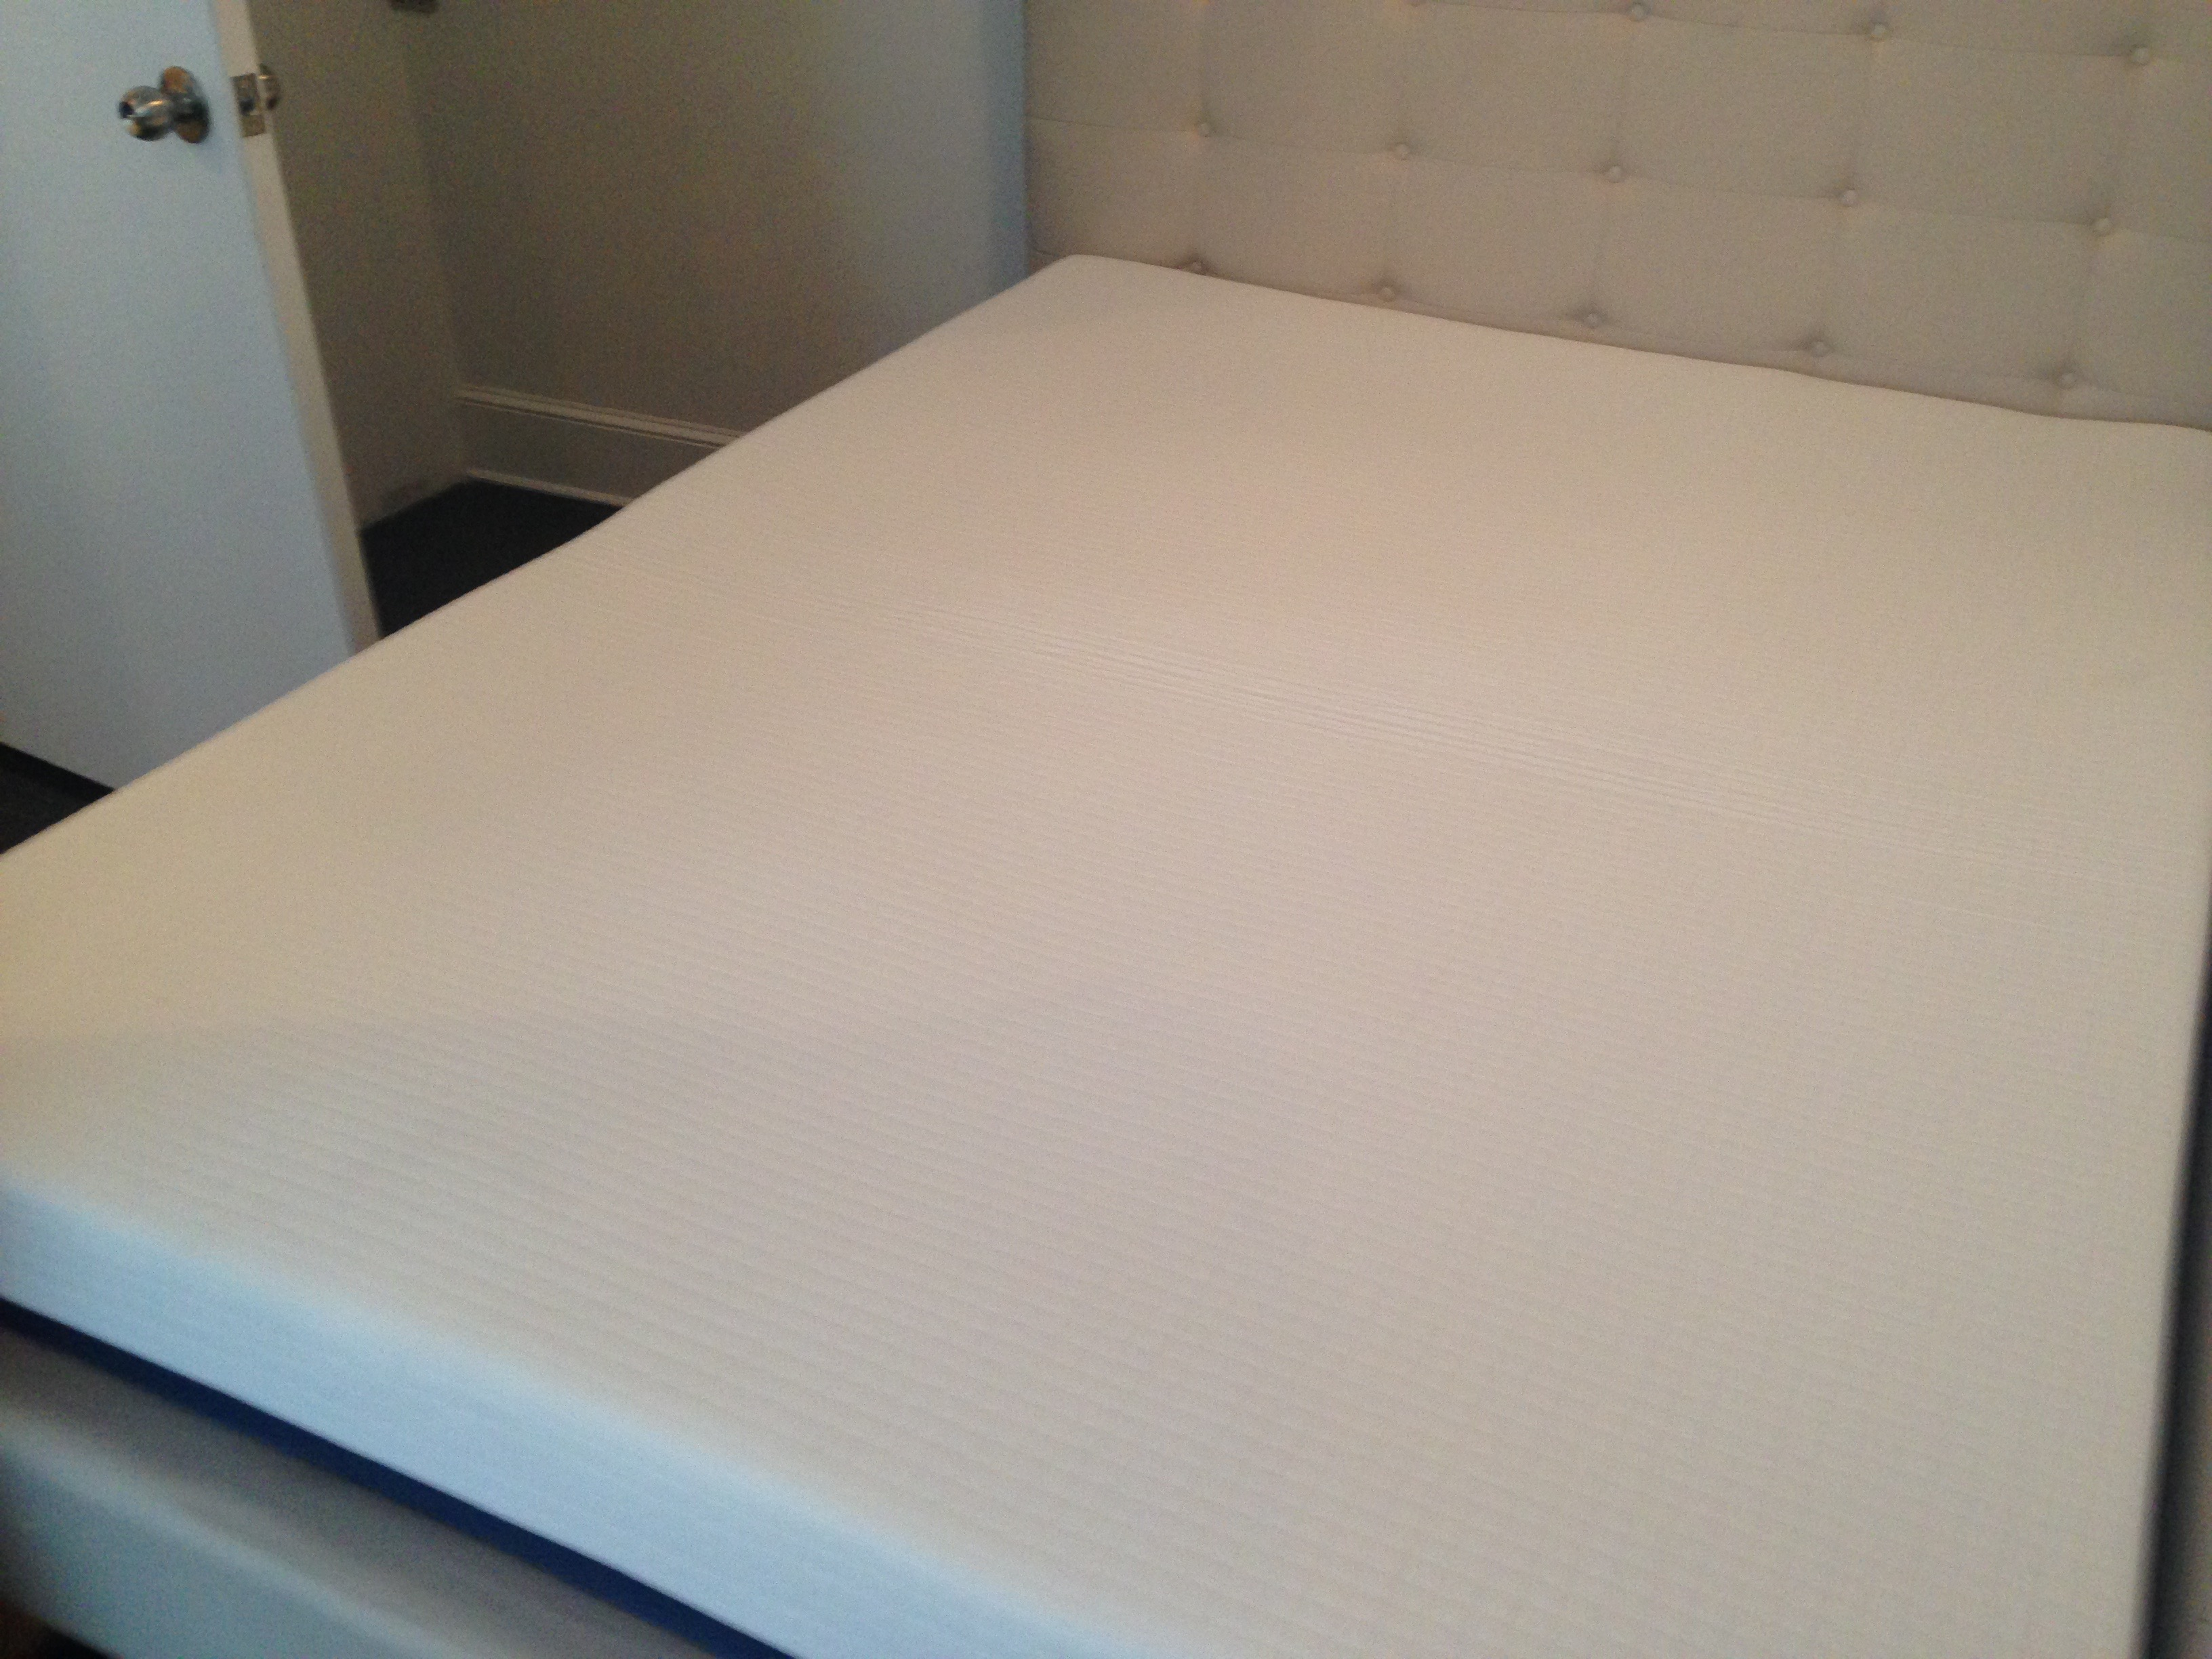 Why You Should Consider Memory Foam Mattresses If Good Sleep Is Eluding You